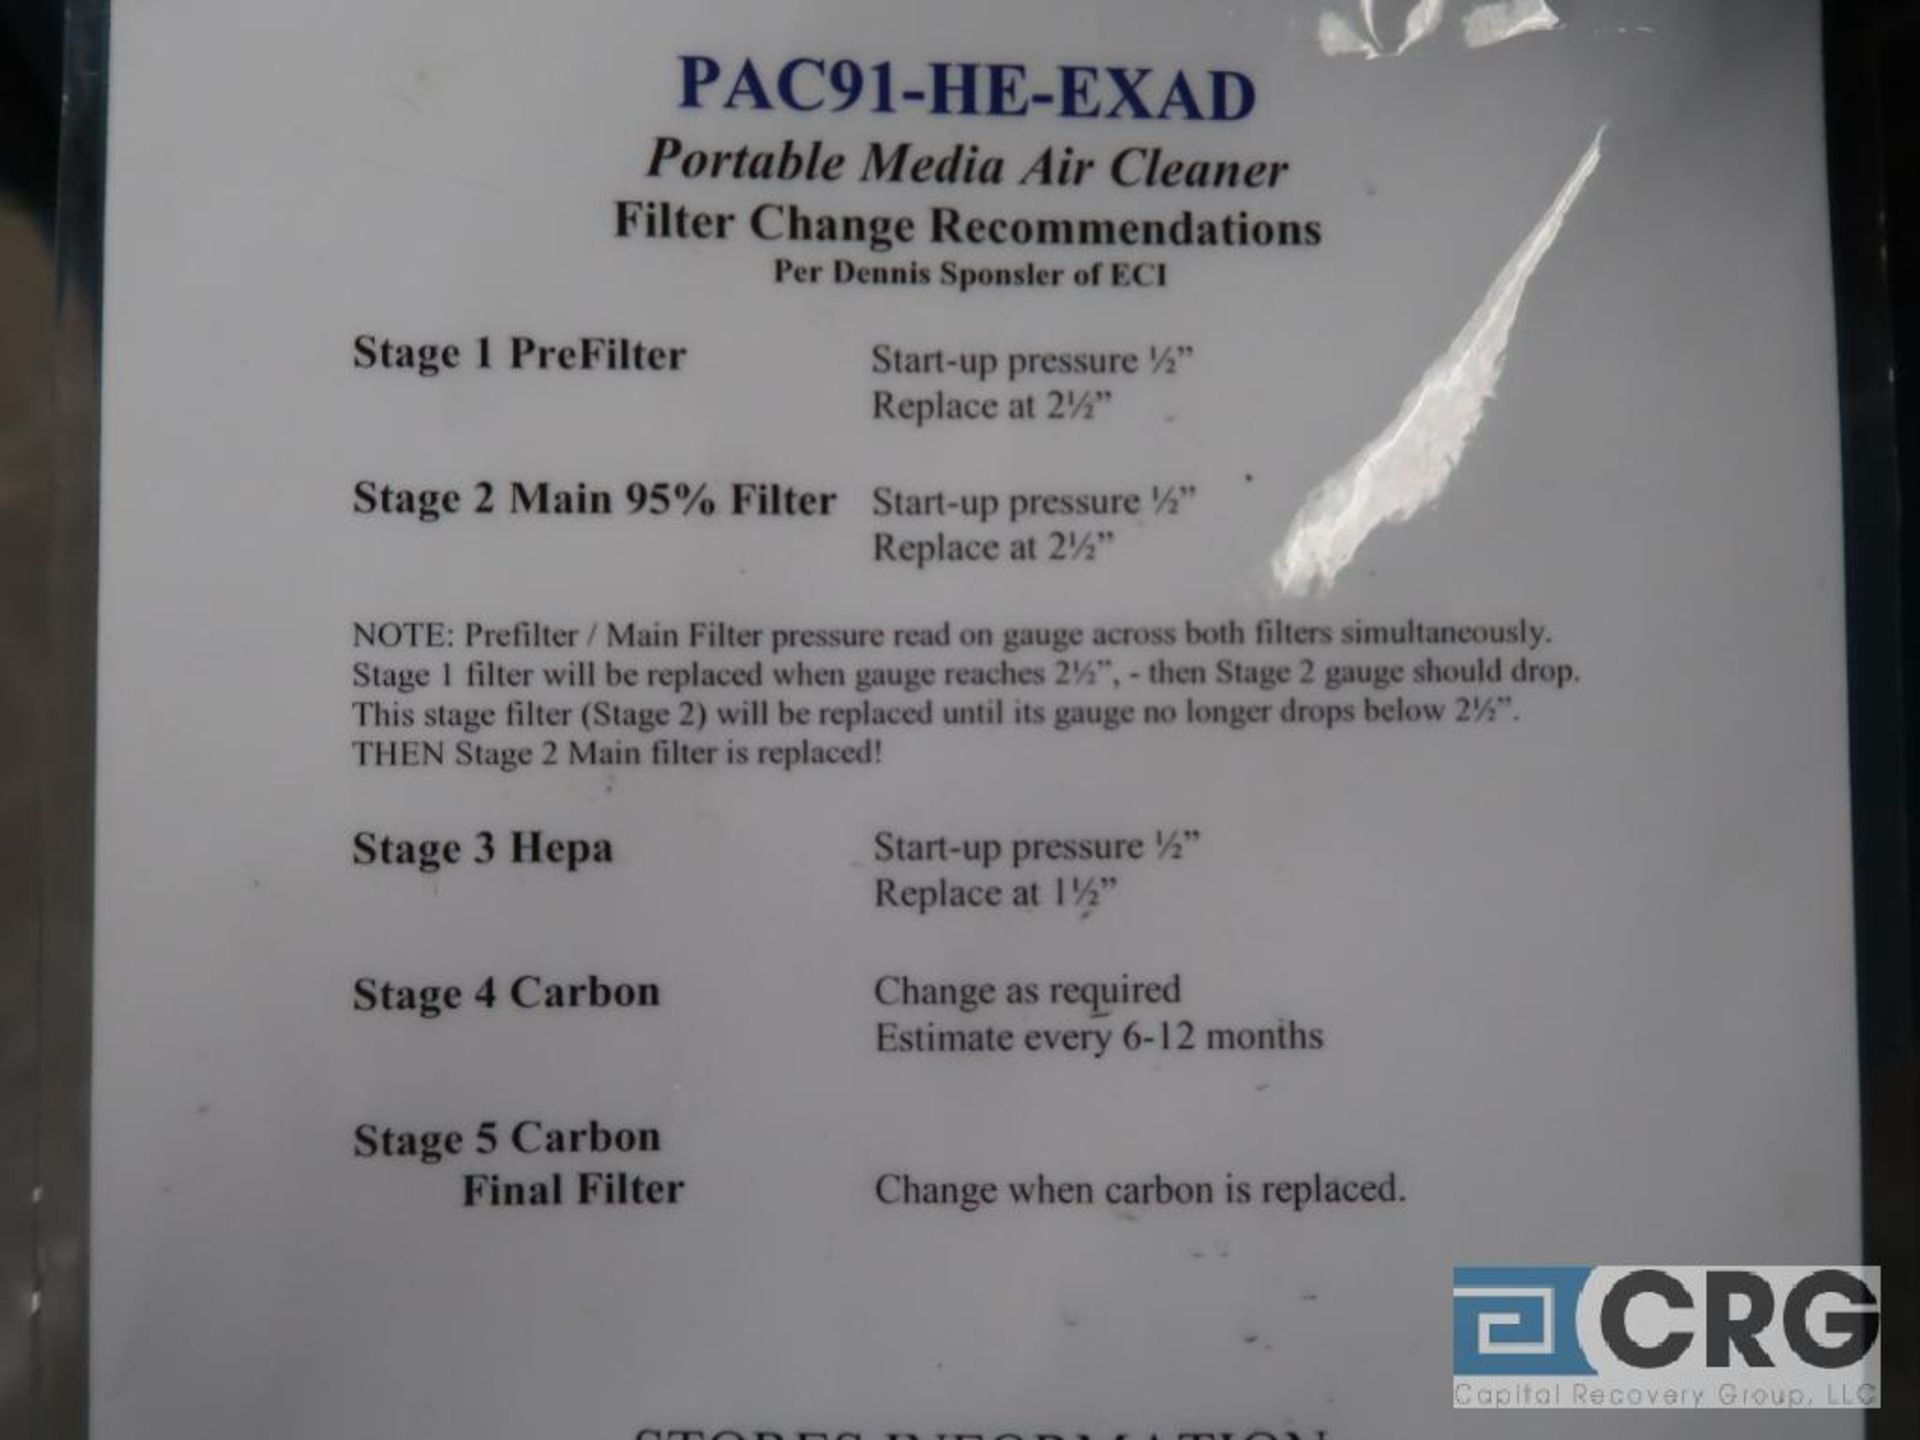 Airflow Systems PAC91-HE-EXAD portable media air cleaner, EX Arm extraction system, 115 Volt( - Image 3 of 3